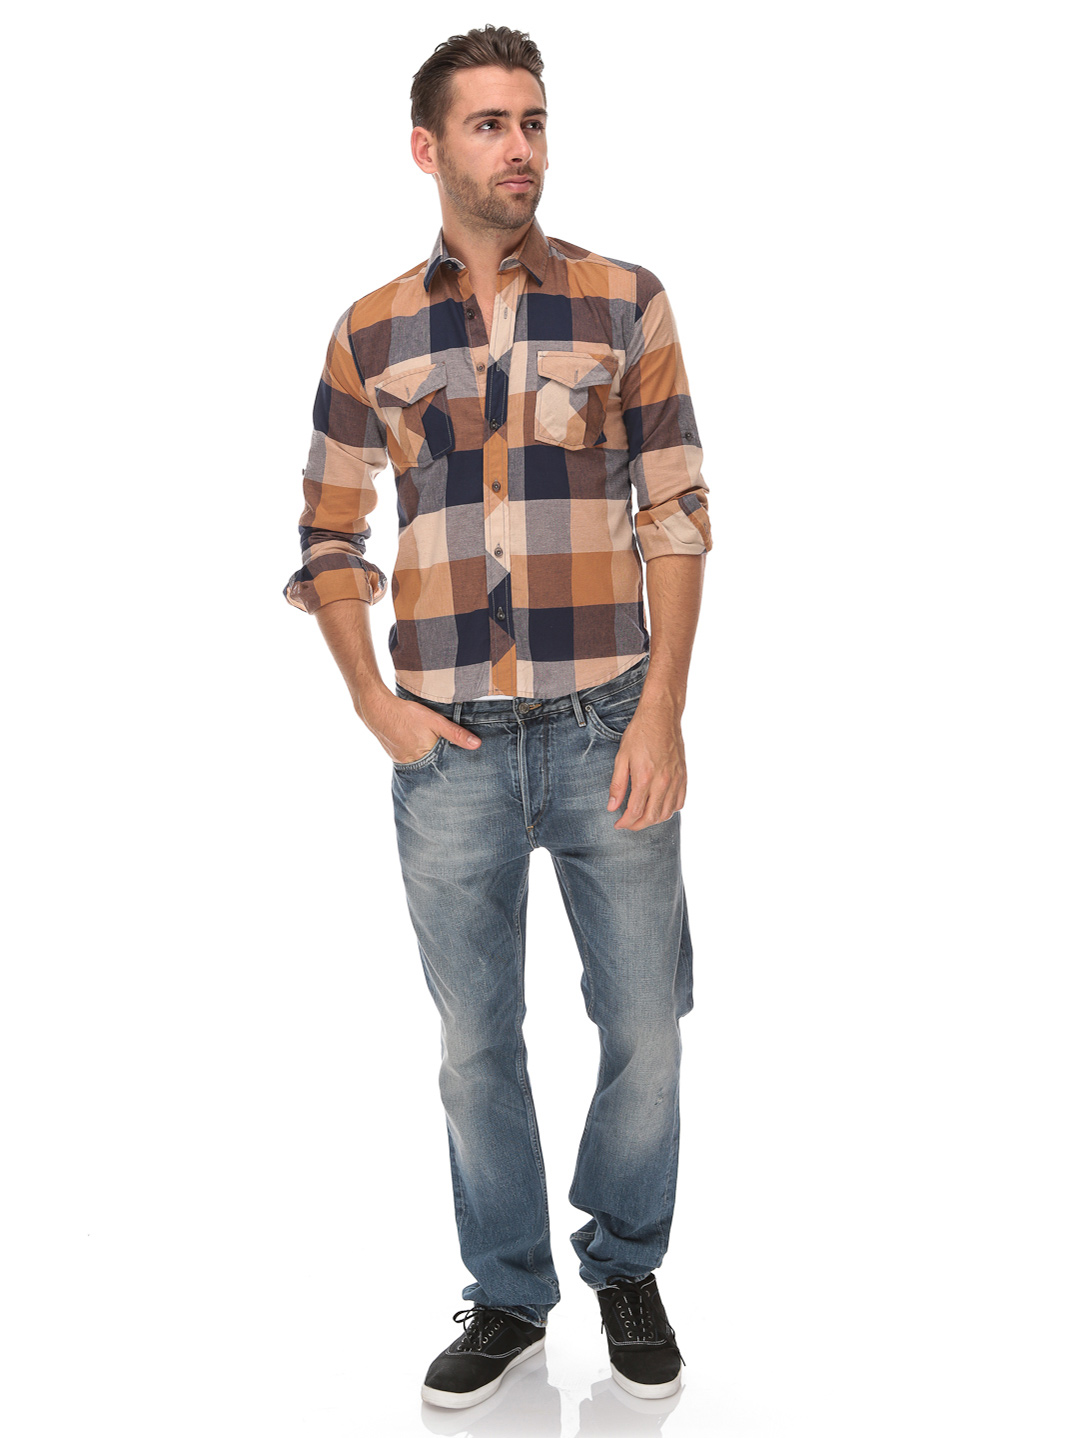 Fashionable clothes for men